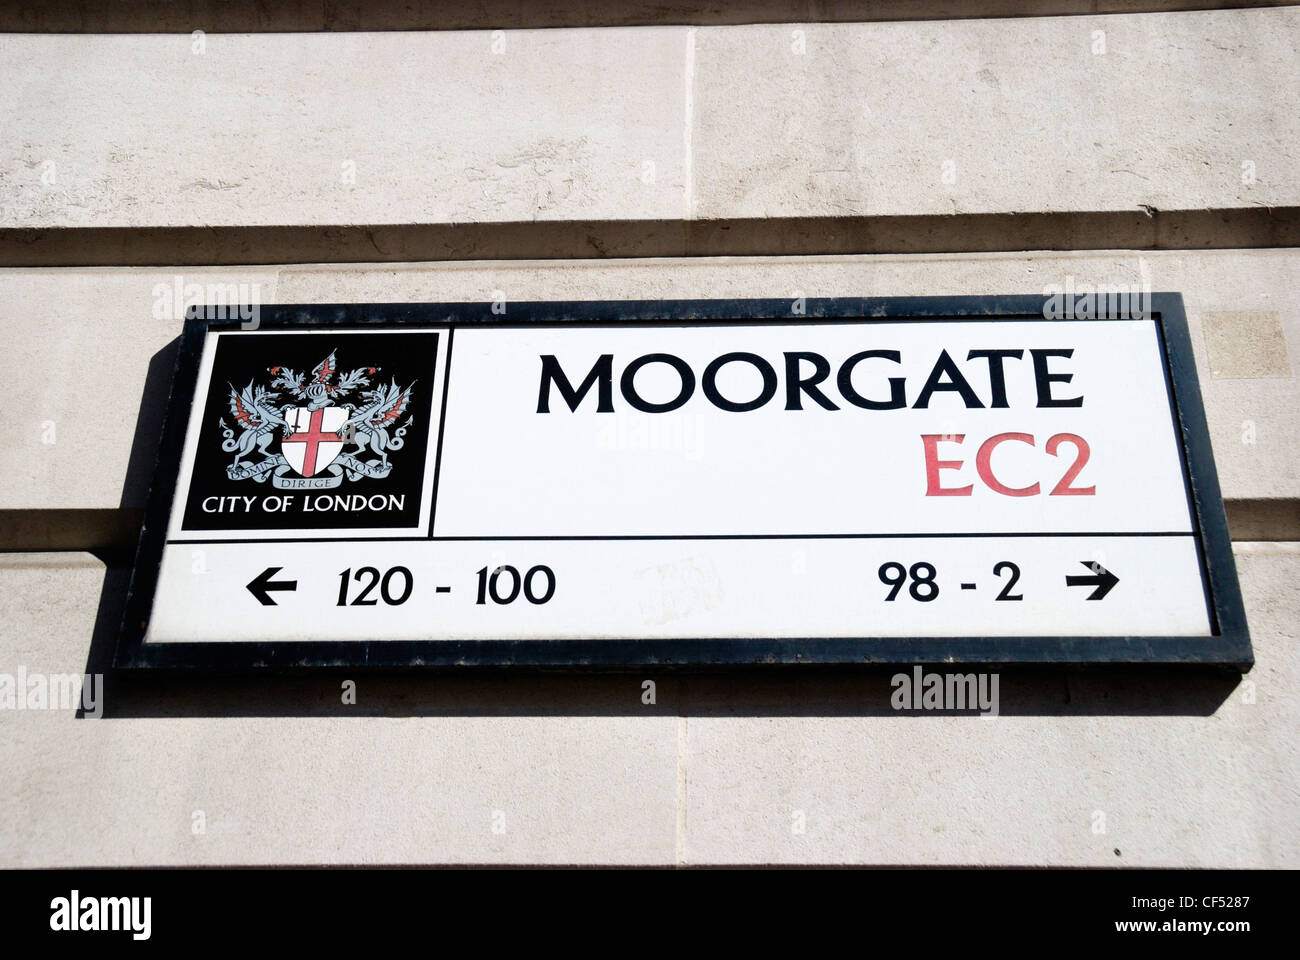 Moorgate EC2 sign featuring the City of London crest. - Stock Image